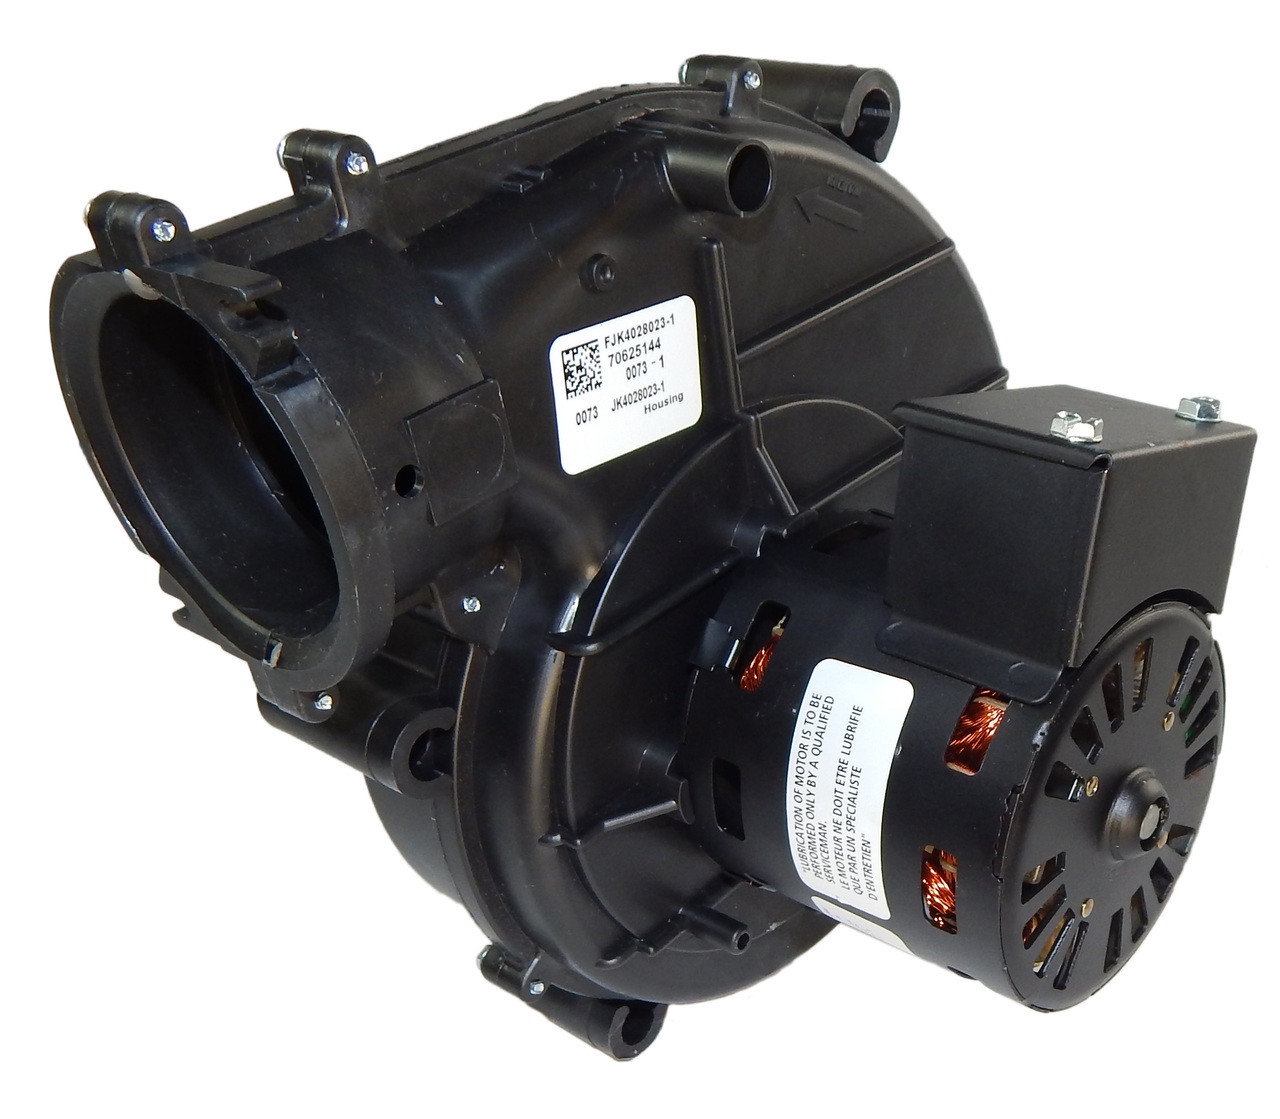 amana furnace draft inducer blower 115v 7062 3151 fasco a158 [ 1280 x 1119 Pixel ]